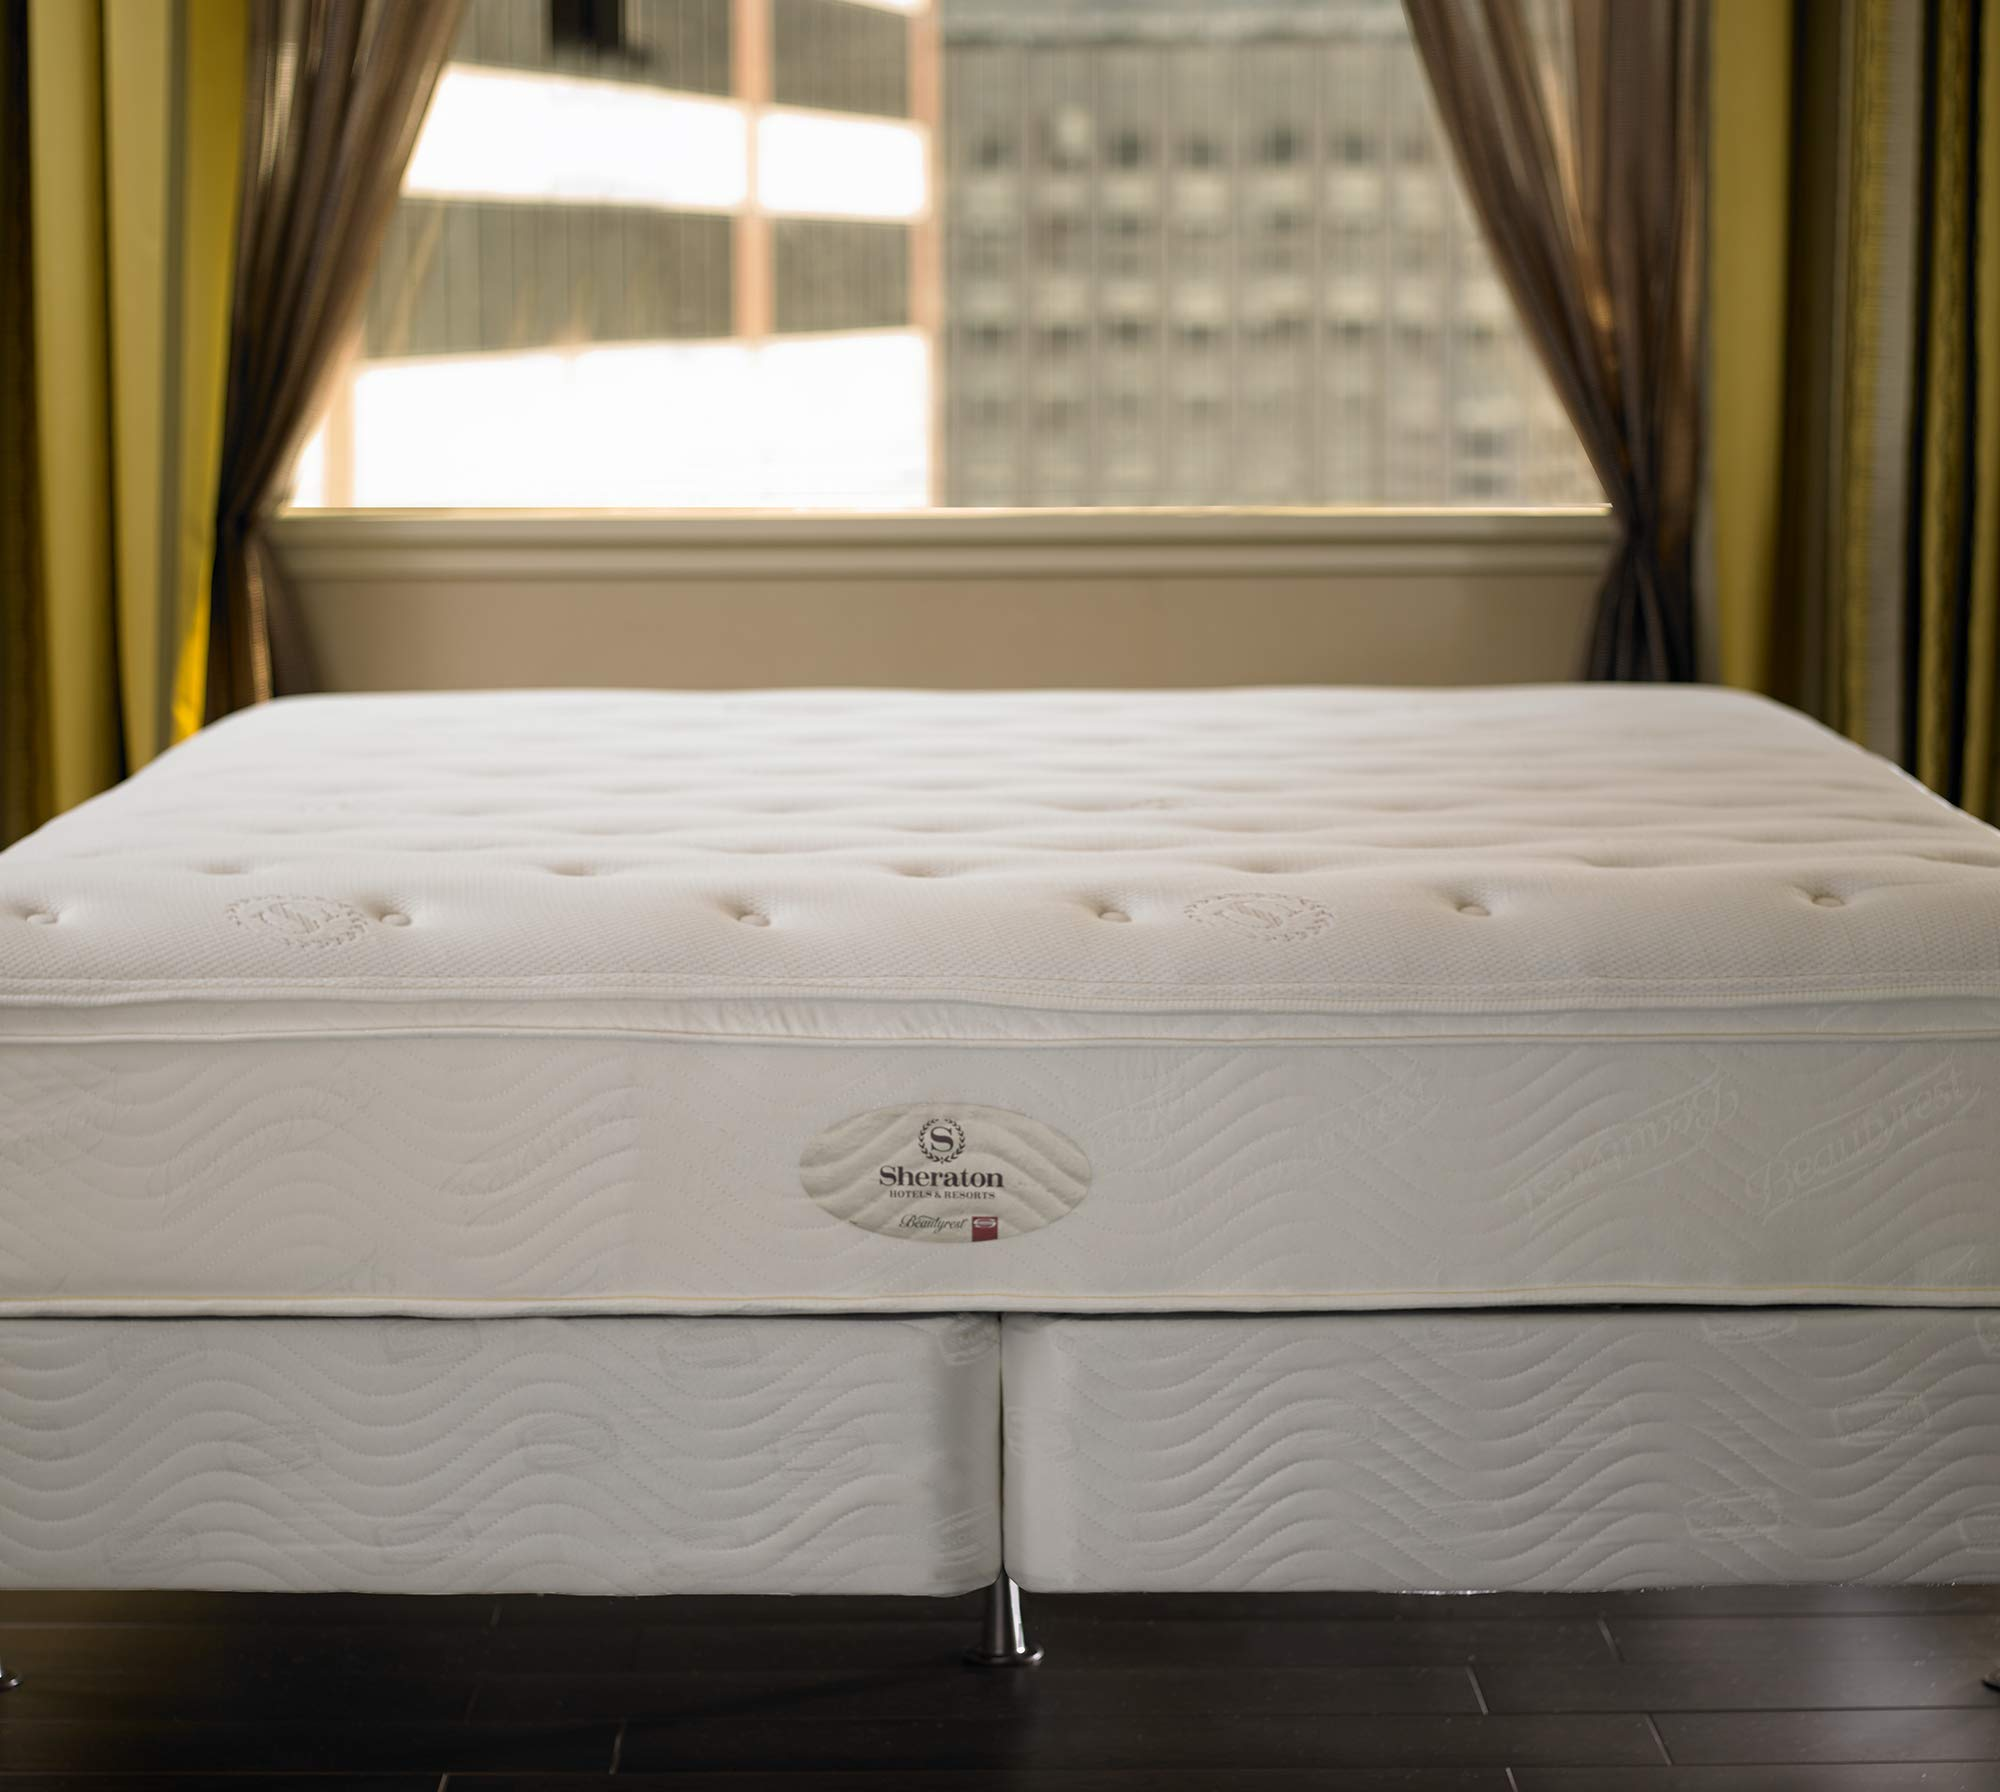 """Sheraton Mattress & Box Spring - 13"""" Pocket Coil Mattress with Quilted Plush Top - Standard 8.75"""" Box Spring - Full"""